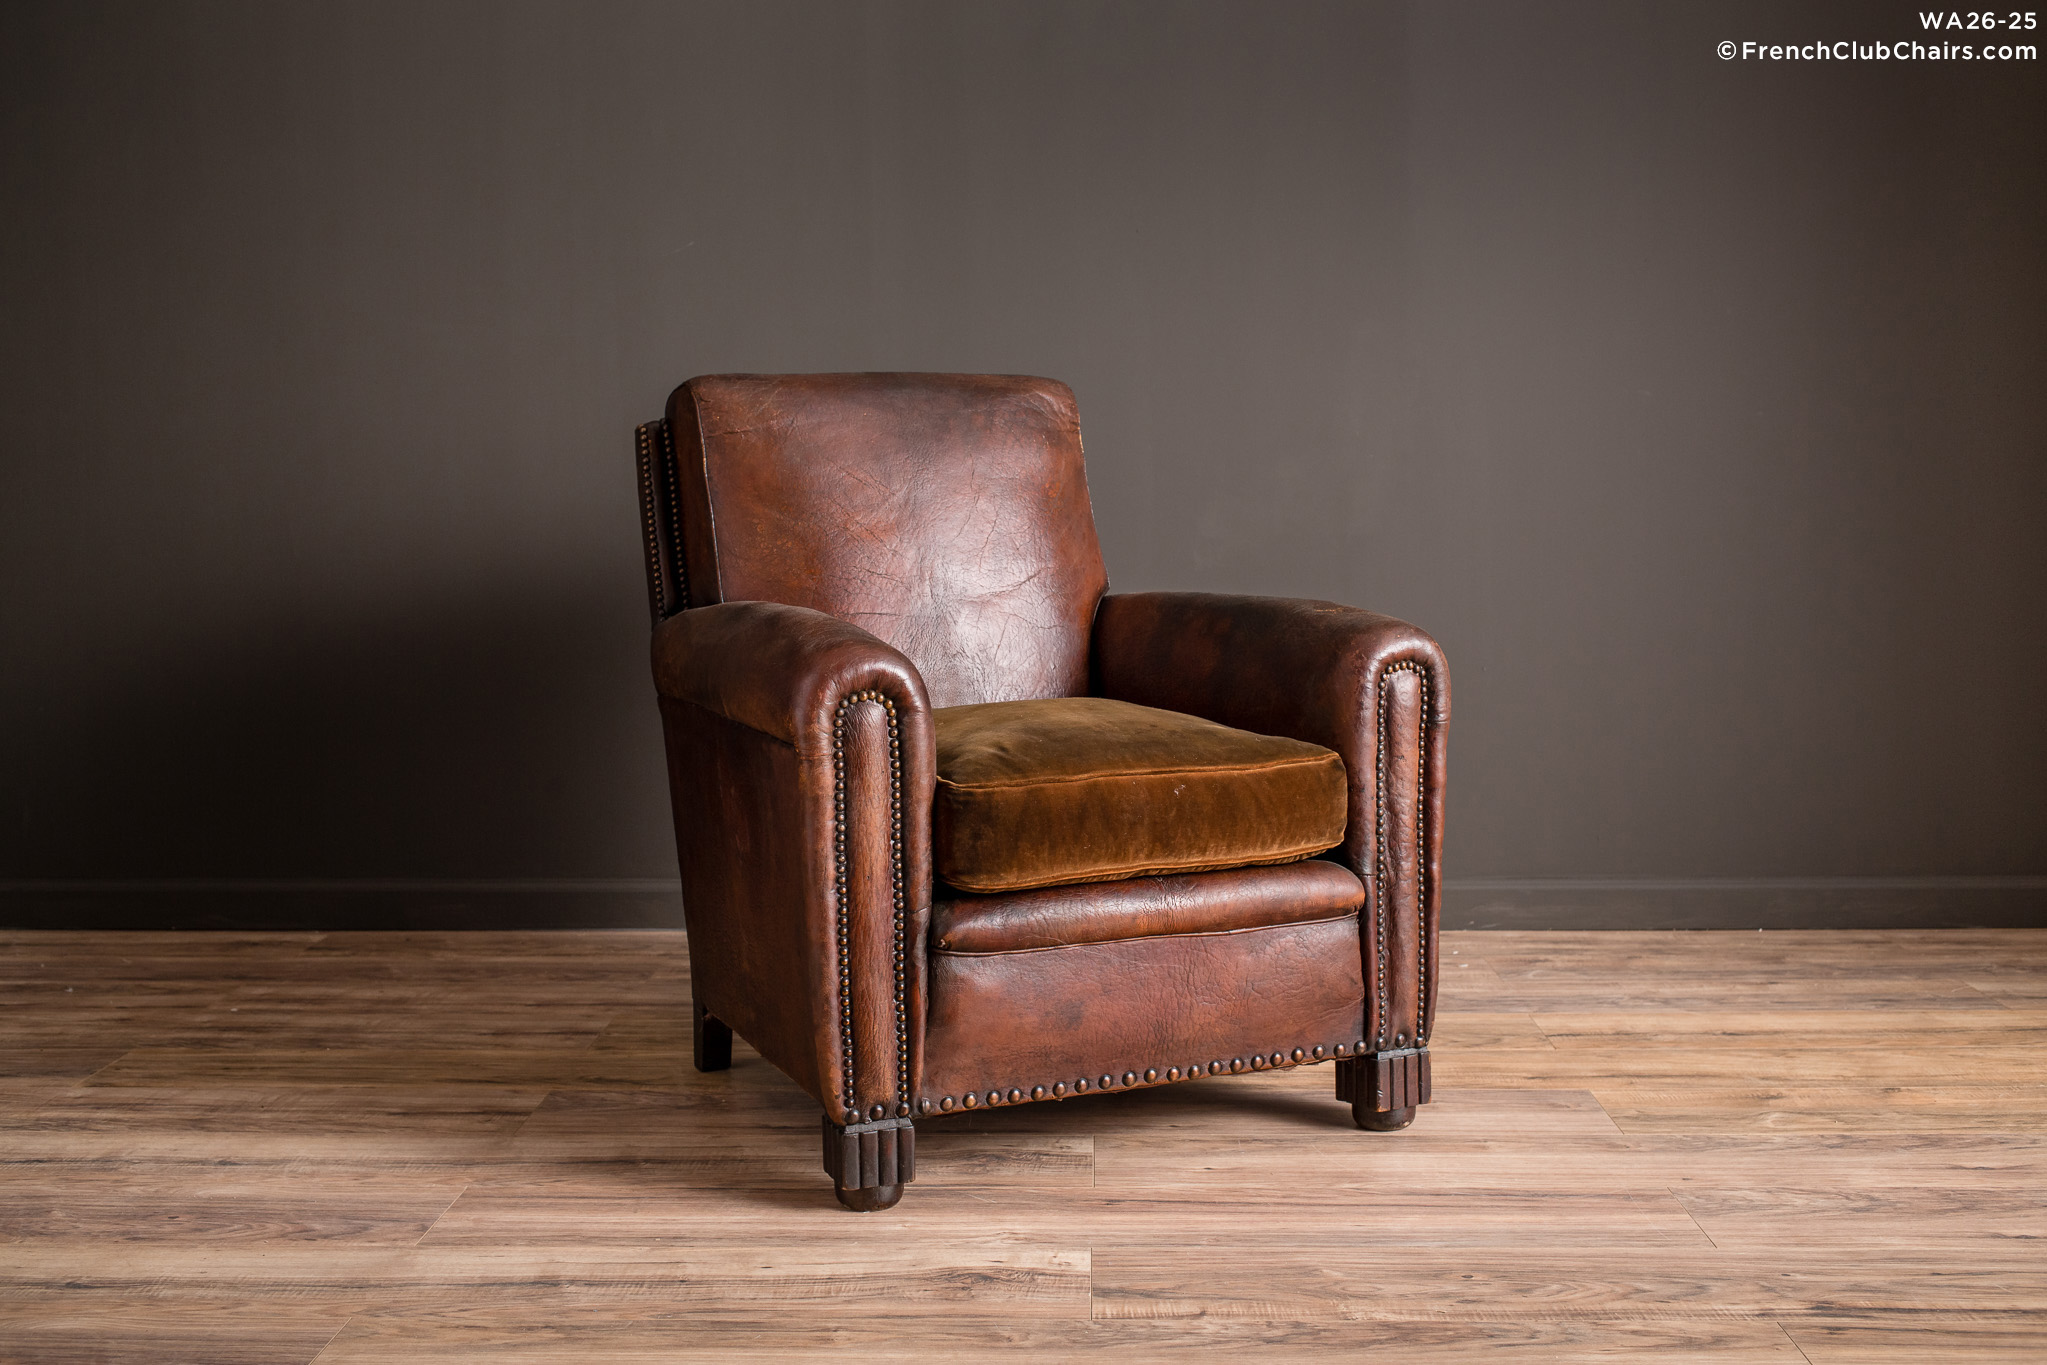 WA_26-25_Basque_Sweet_Dark_Nailed_Solo_R_1TQ-v01-williams-antiks-leather-french-club-chair-wa_fcccom